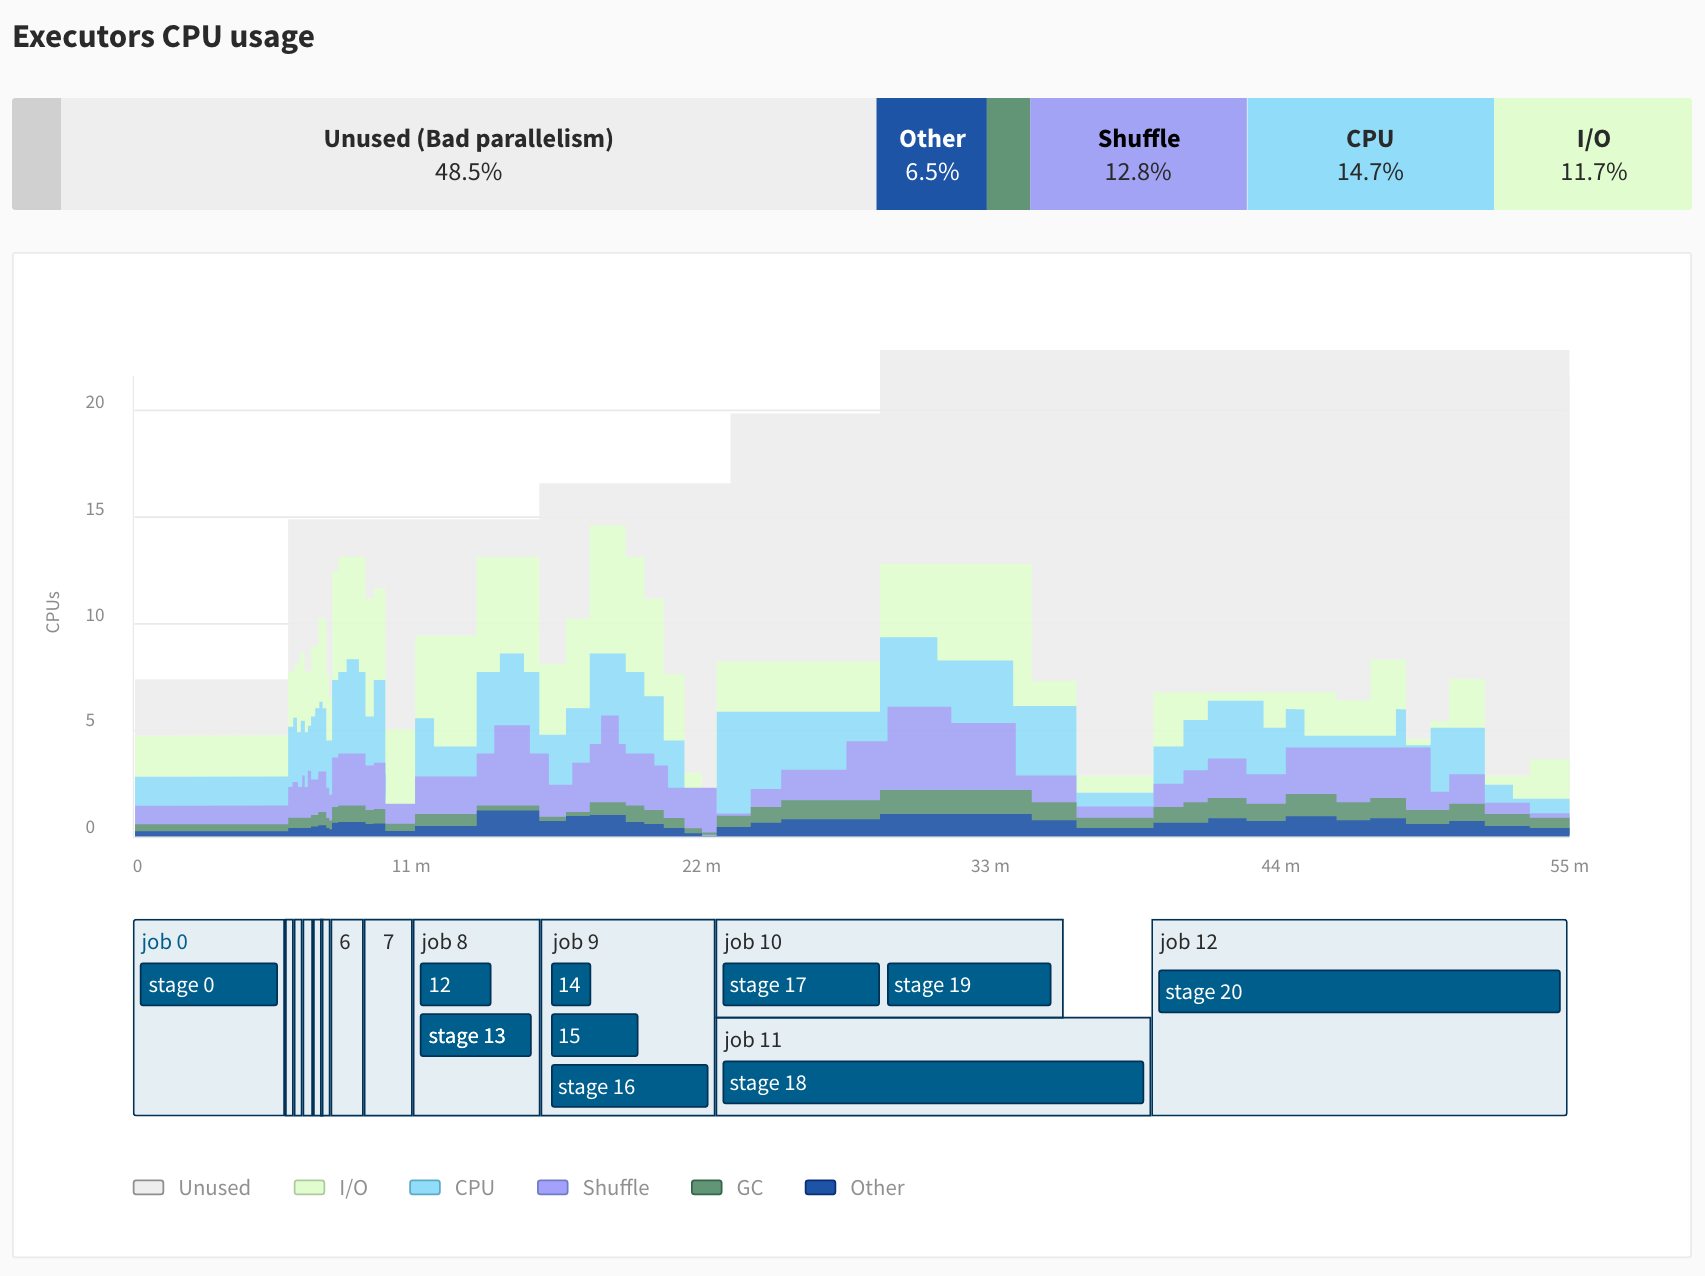 Data Mechanics Delight - Executor CPU Usage and Parallelism Issues - Better Spark UI